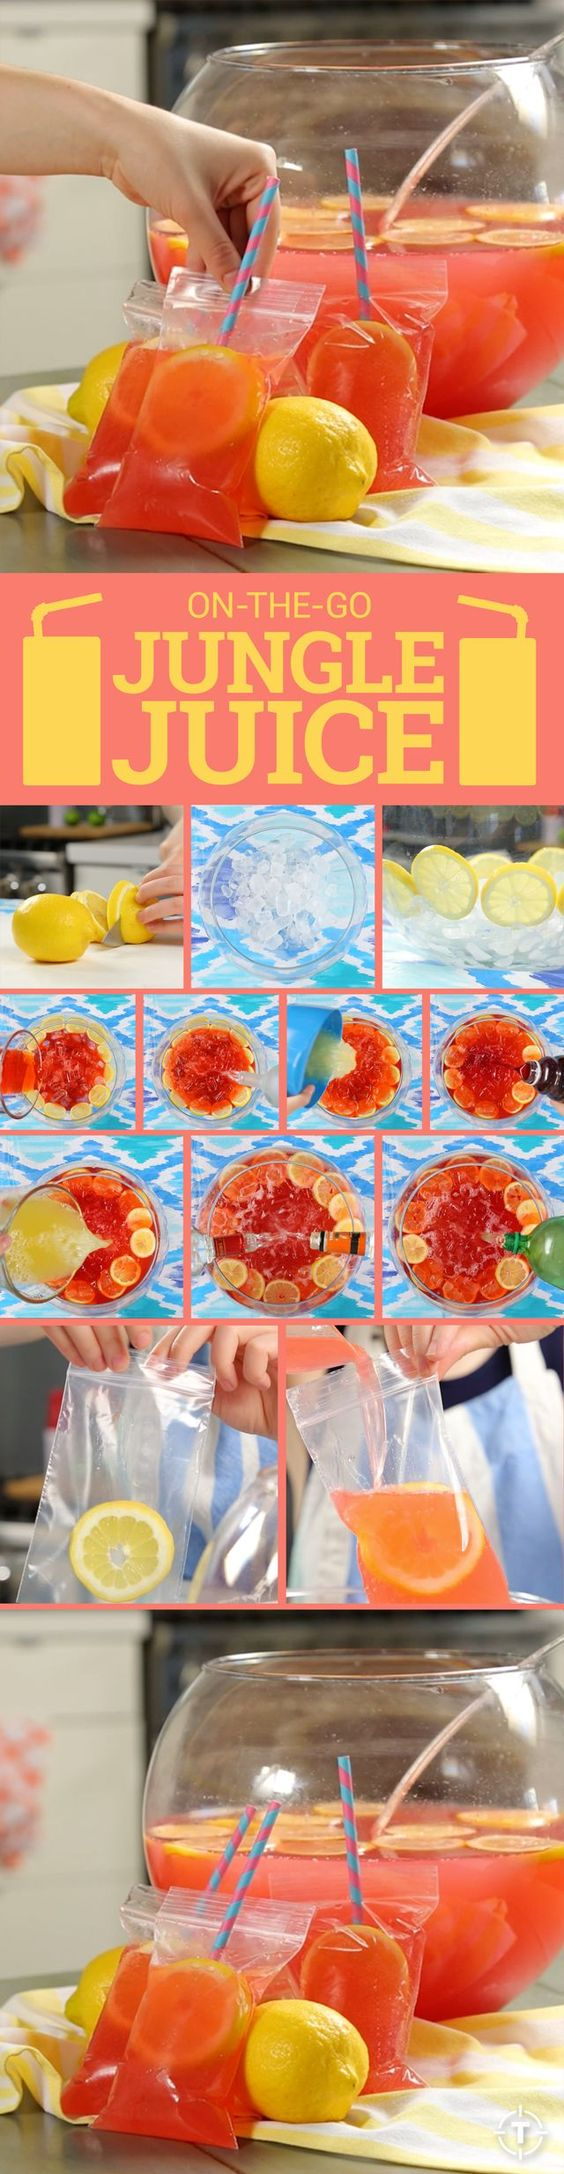 Jungle juice, Hawaiian punch and Frozen lemonade on Pinterest